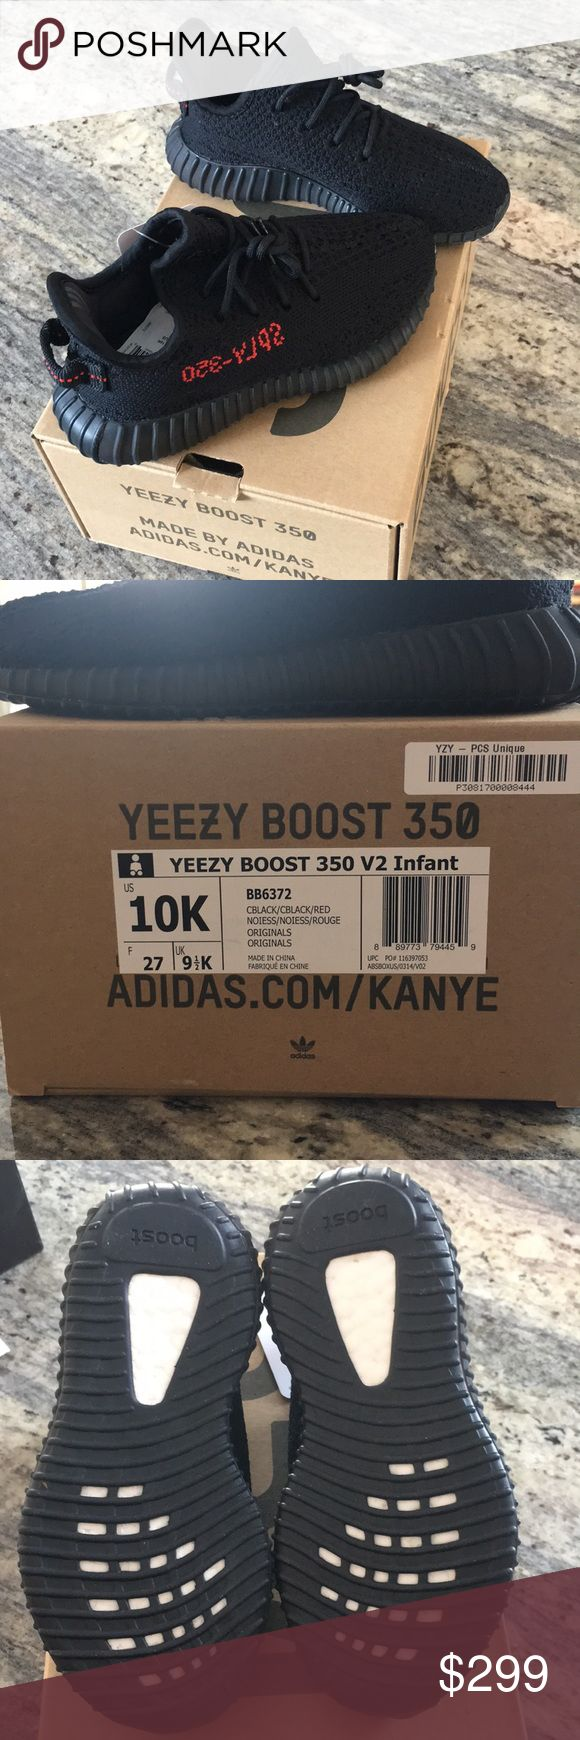 Yeezy boost 350 V2 Infant size 10K BRAND NEW! 100% Authentic!! Black shoes with black soles and red detailing. Toddler size 10. Comes from a smoke free/ pet free home. NO TRADES. Yeezy Shoes Sneakers